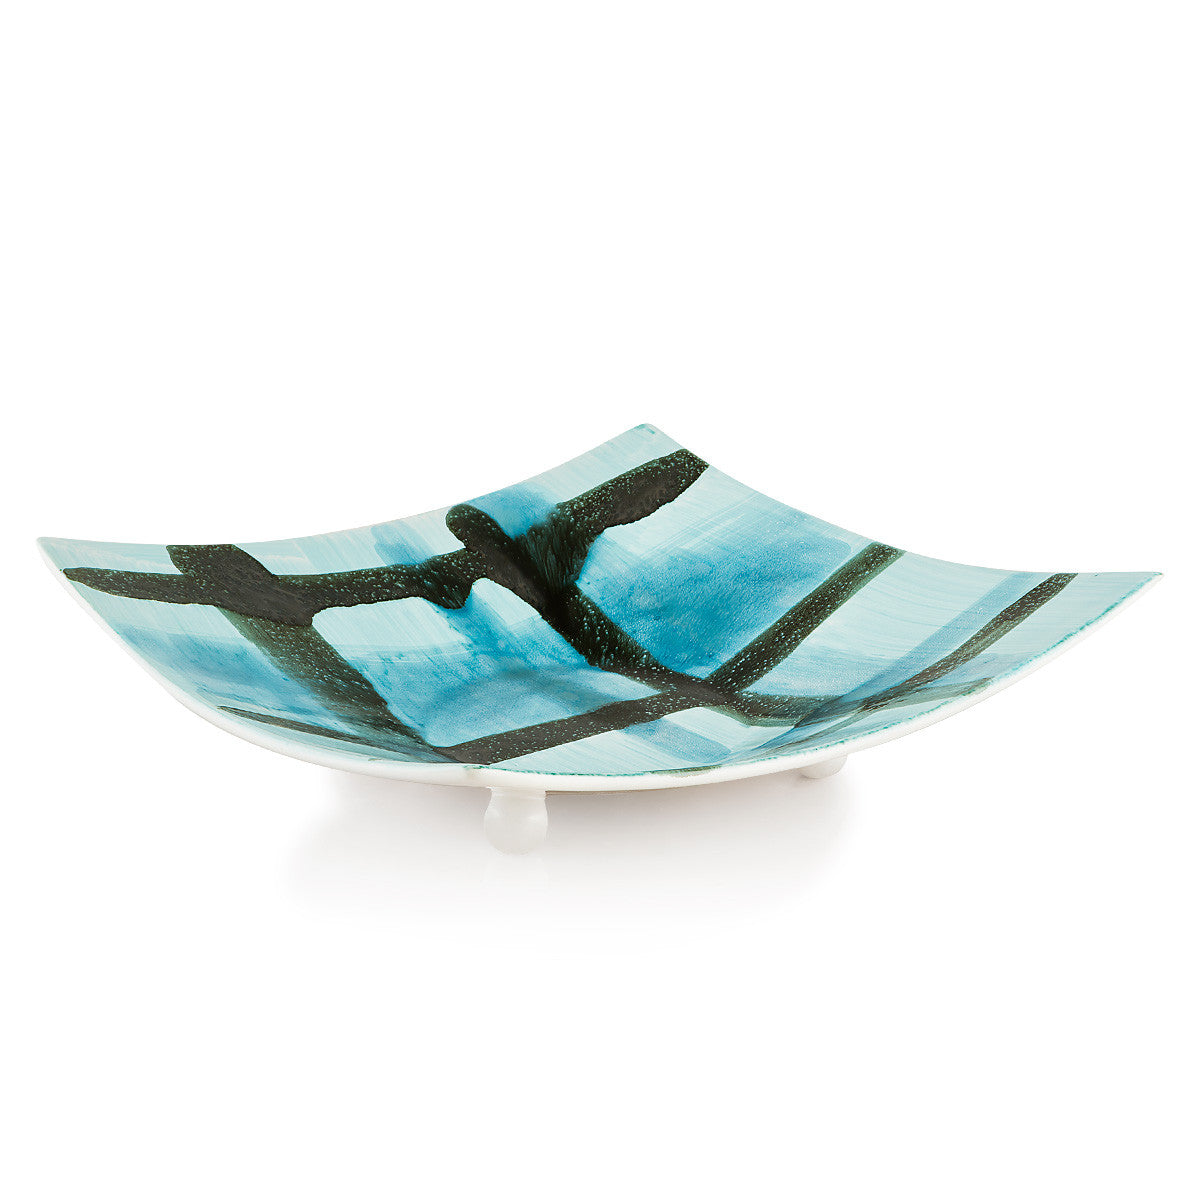 Ceramic plate centerpiece with abstract designs-expressionism-bowl-light blue color-minimalism